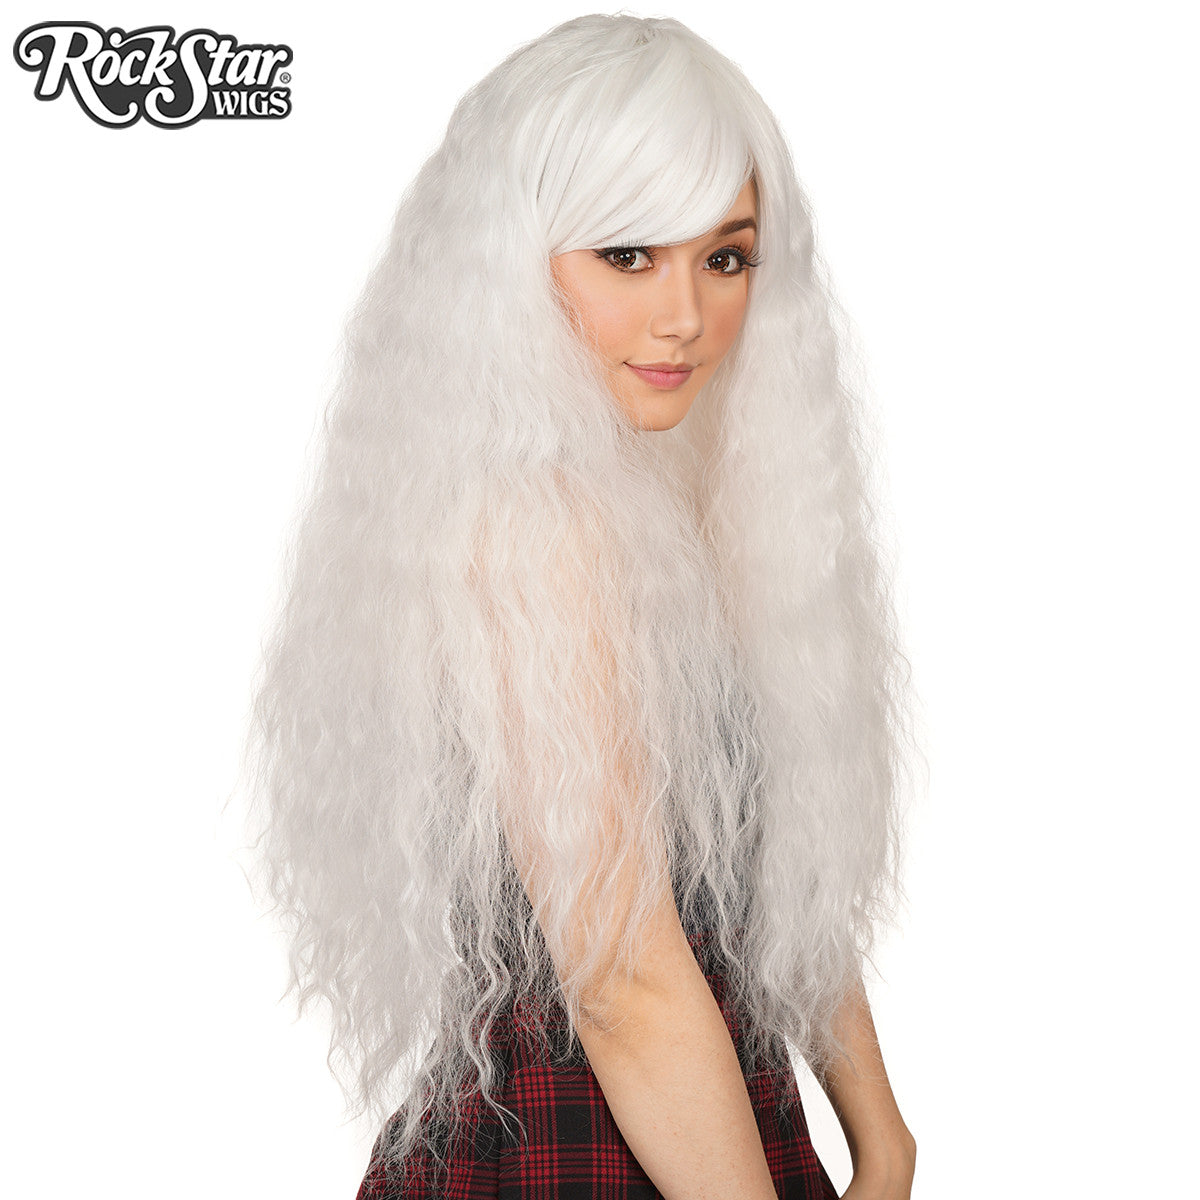 RockStar Wigs® <br> Prima Donna™ Collection - White Cloud -00217